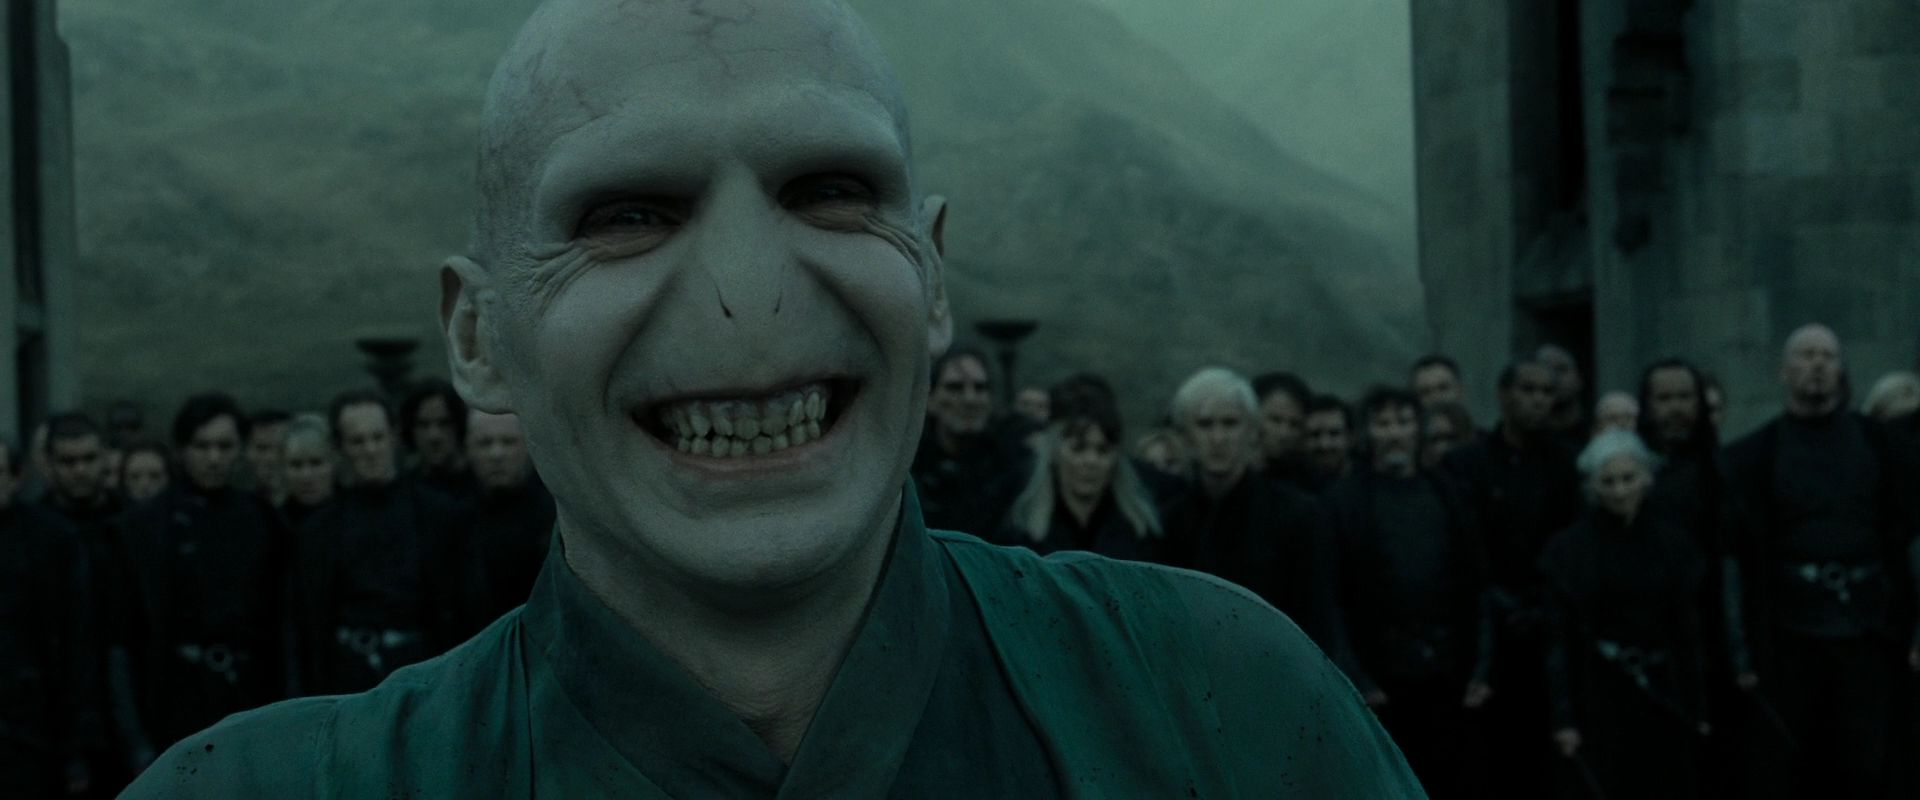 3141025-hp-dh-part-2-lord-voldemort-26625098-1920-800.jpg